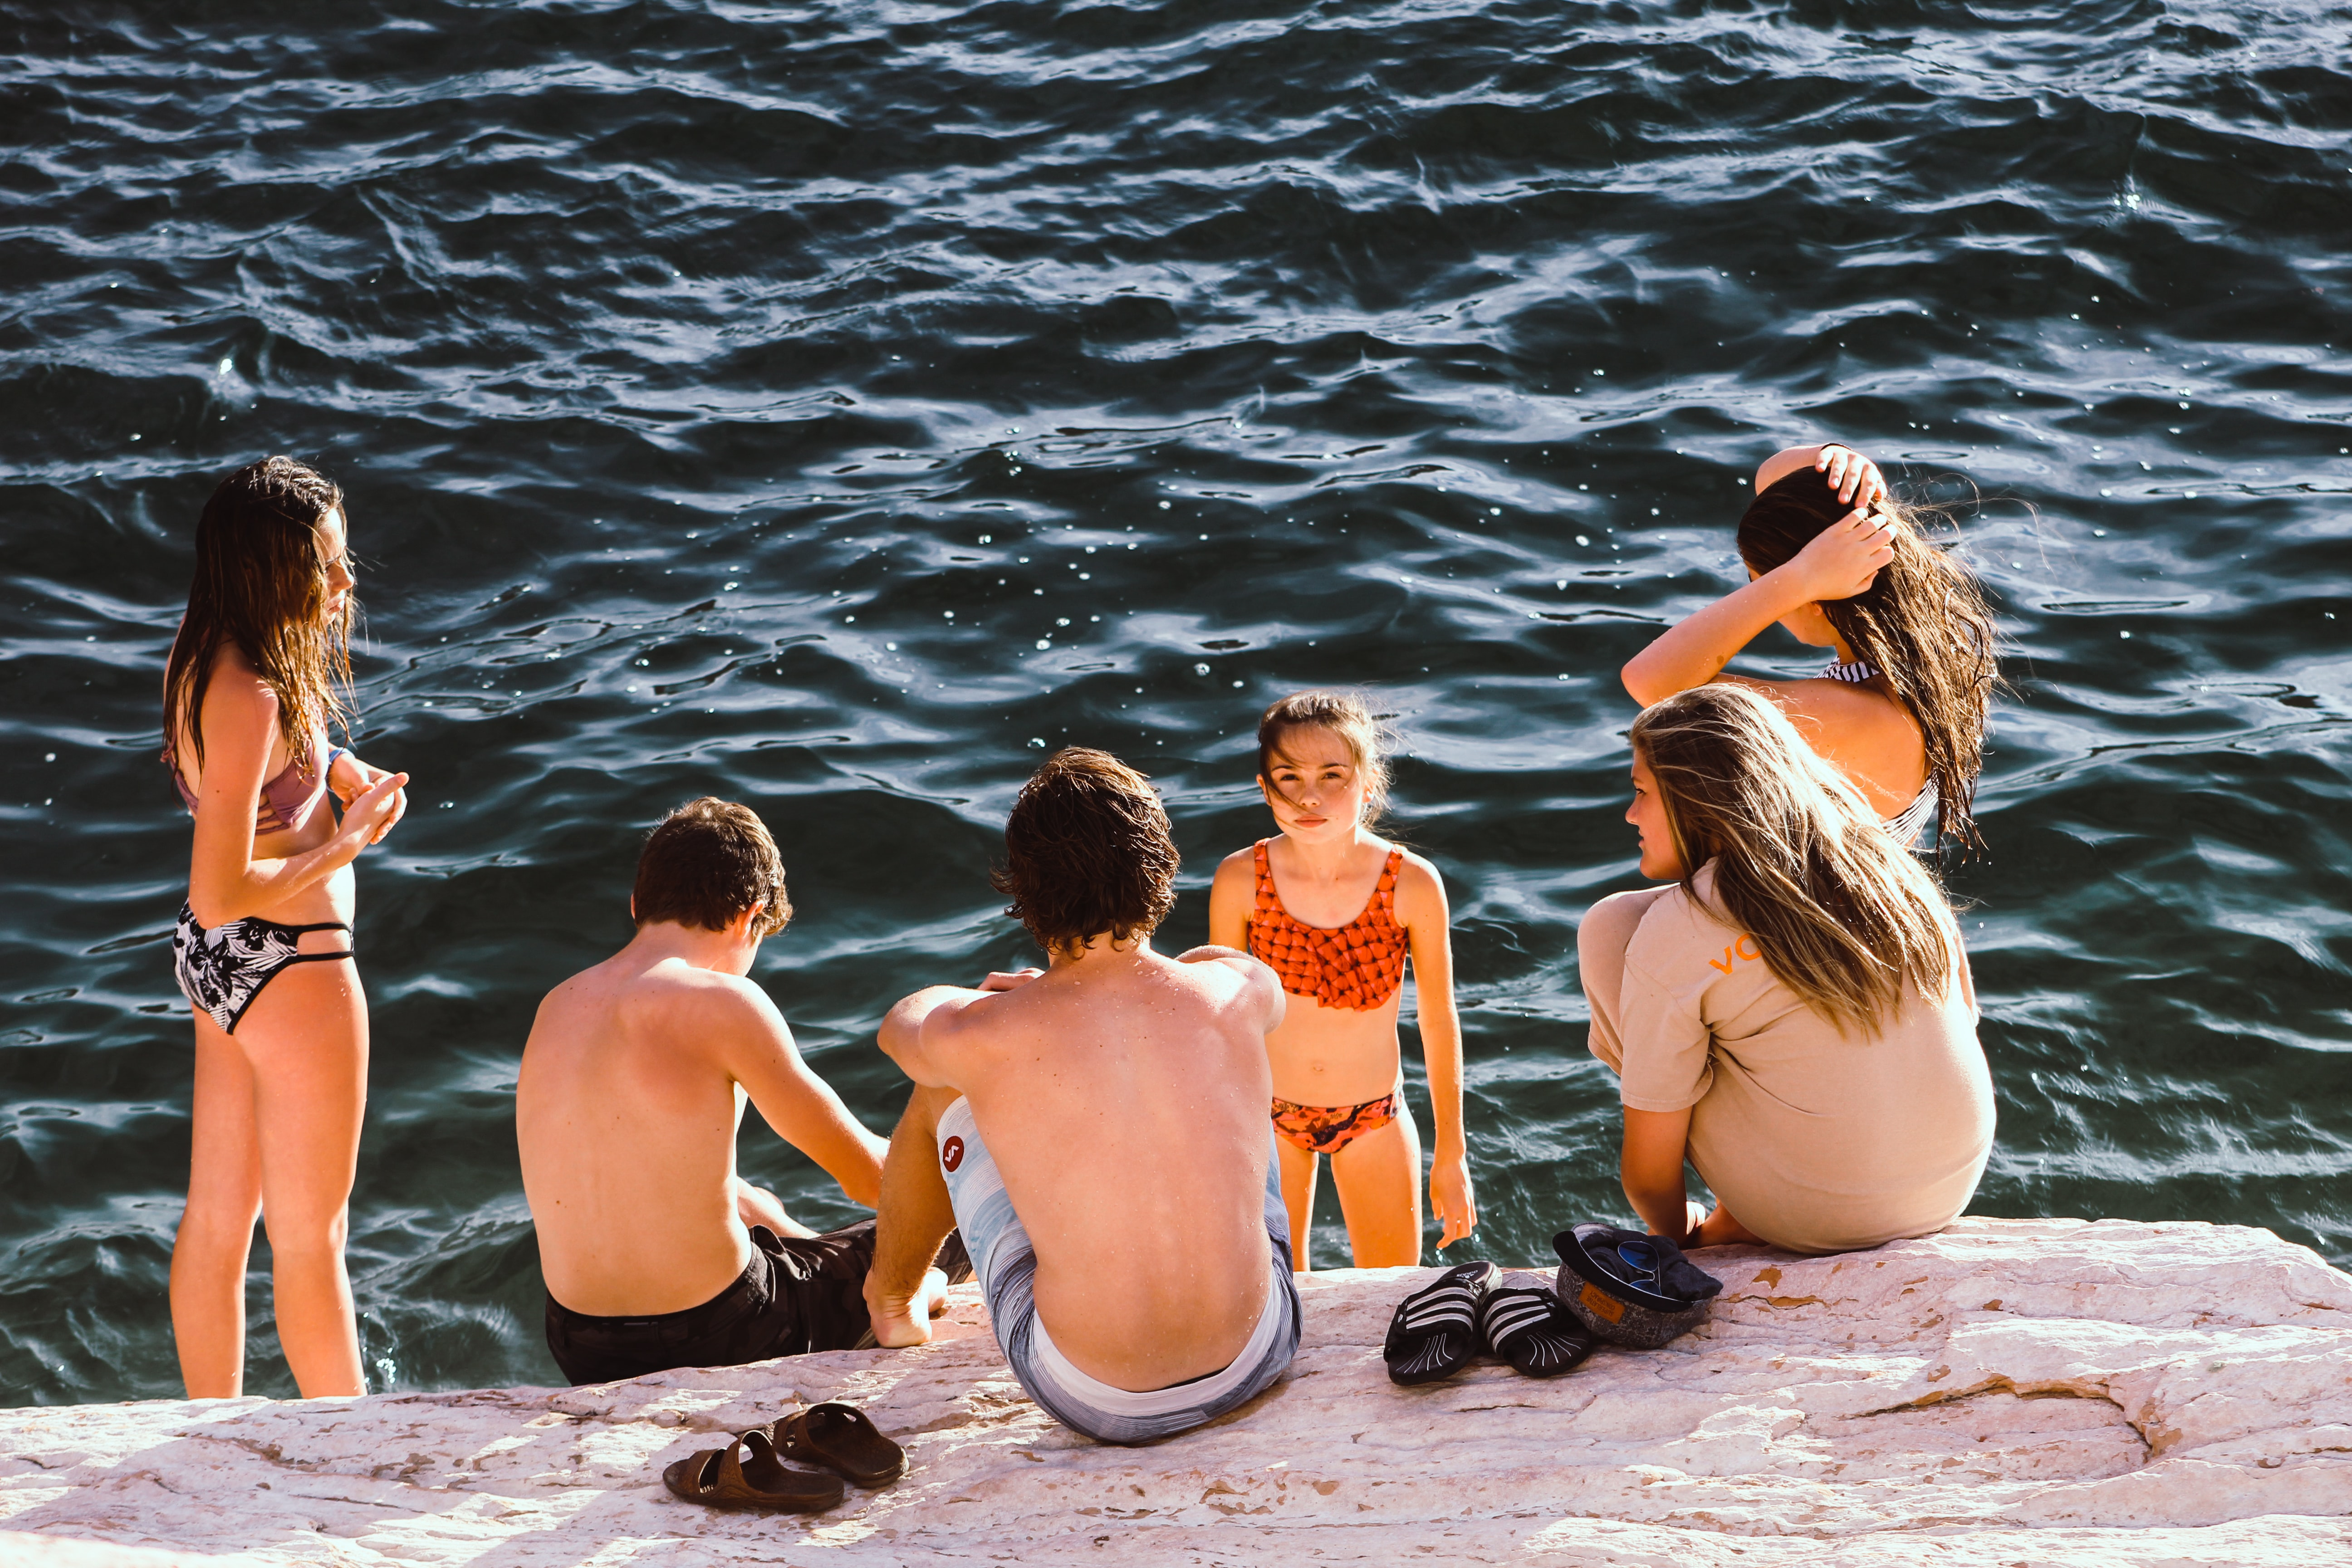 Family with children in swimsuits sitting on the rocks of a beach getting ready to swim